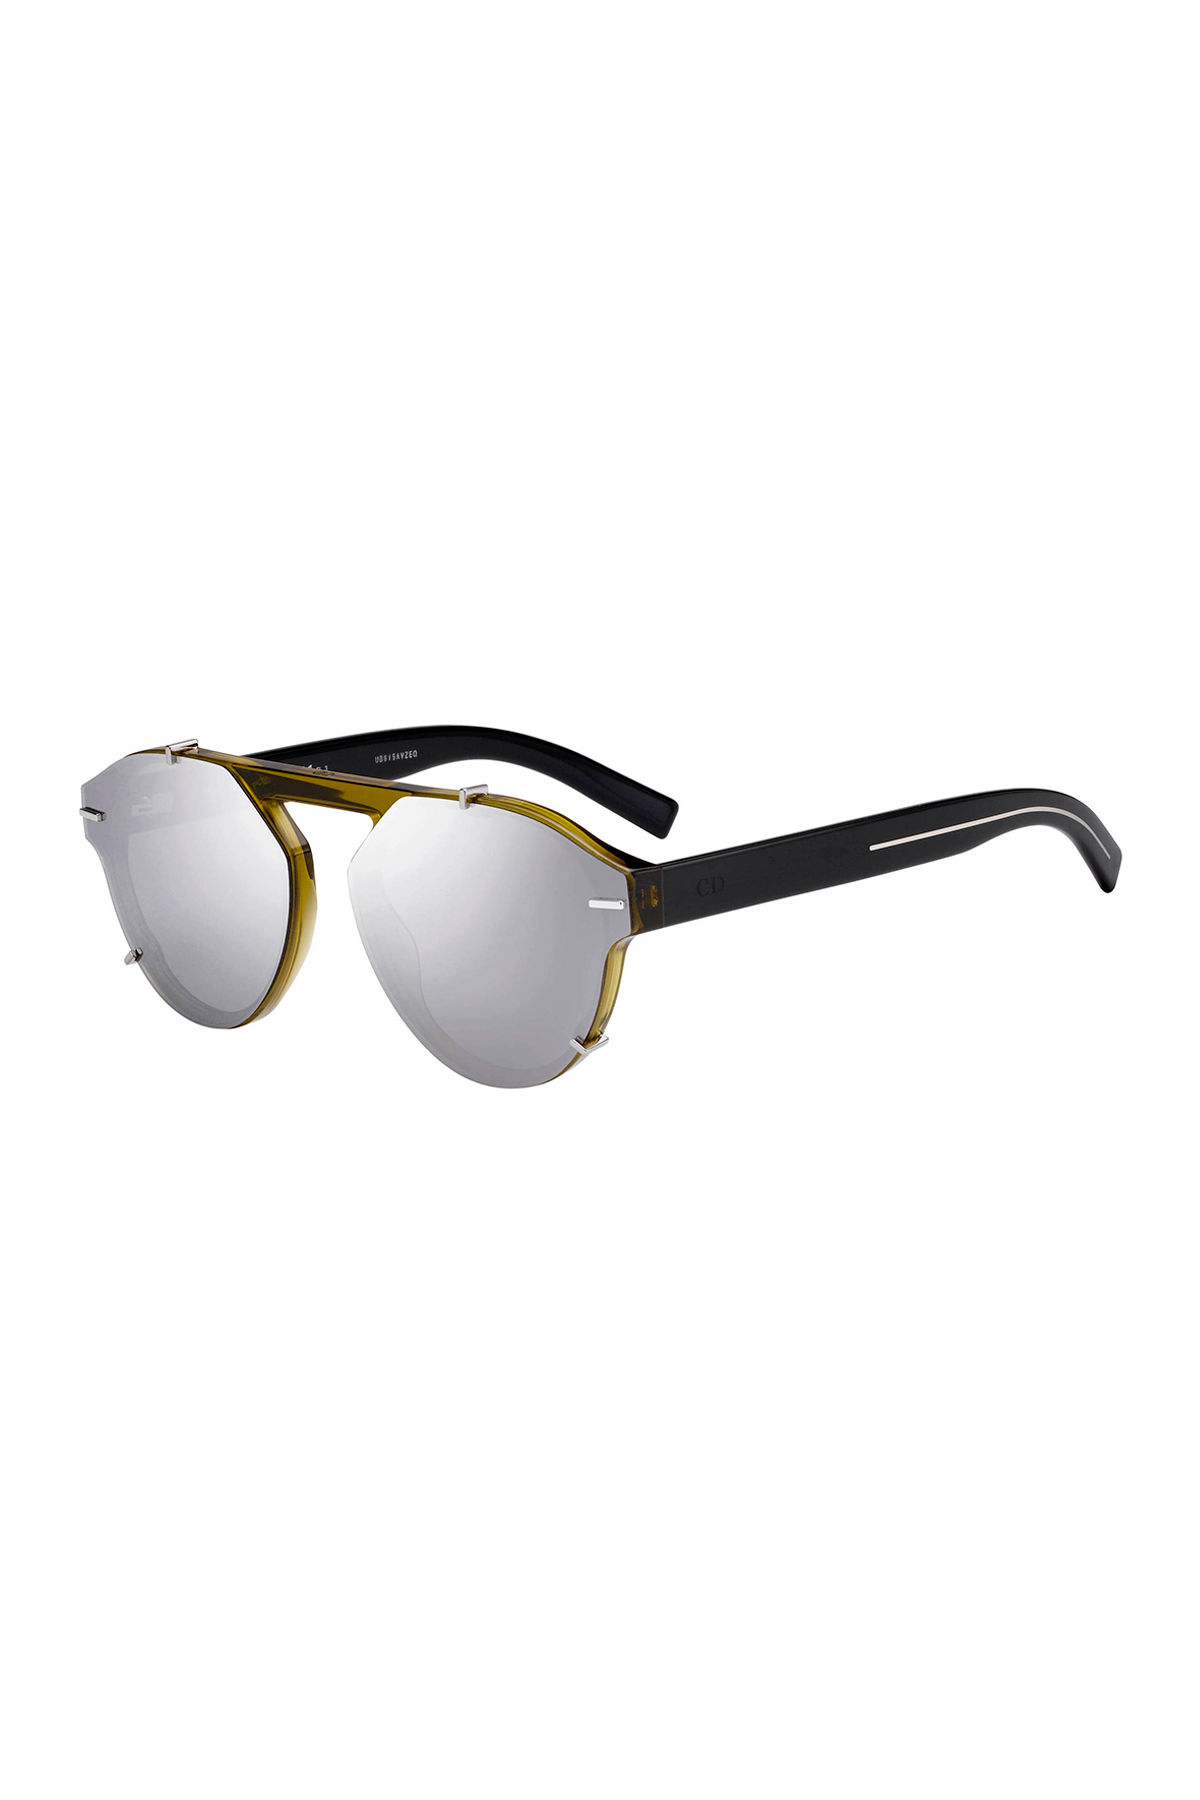 Dior Sunglasses MEN'S ROUND CLIPPED OPTYL® SUNGLASSES